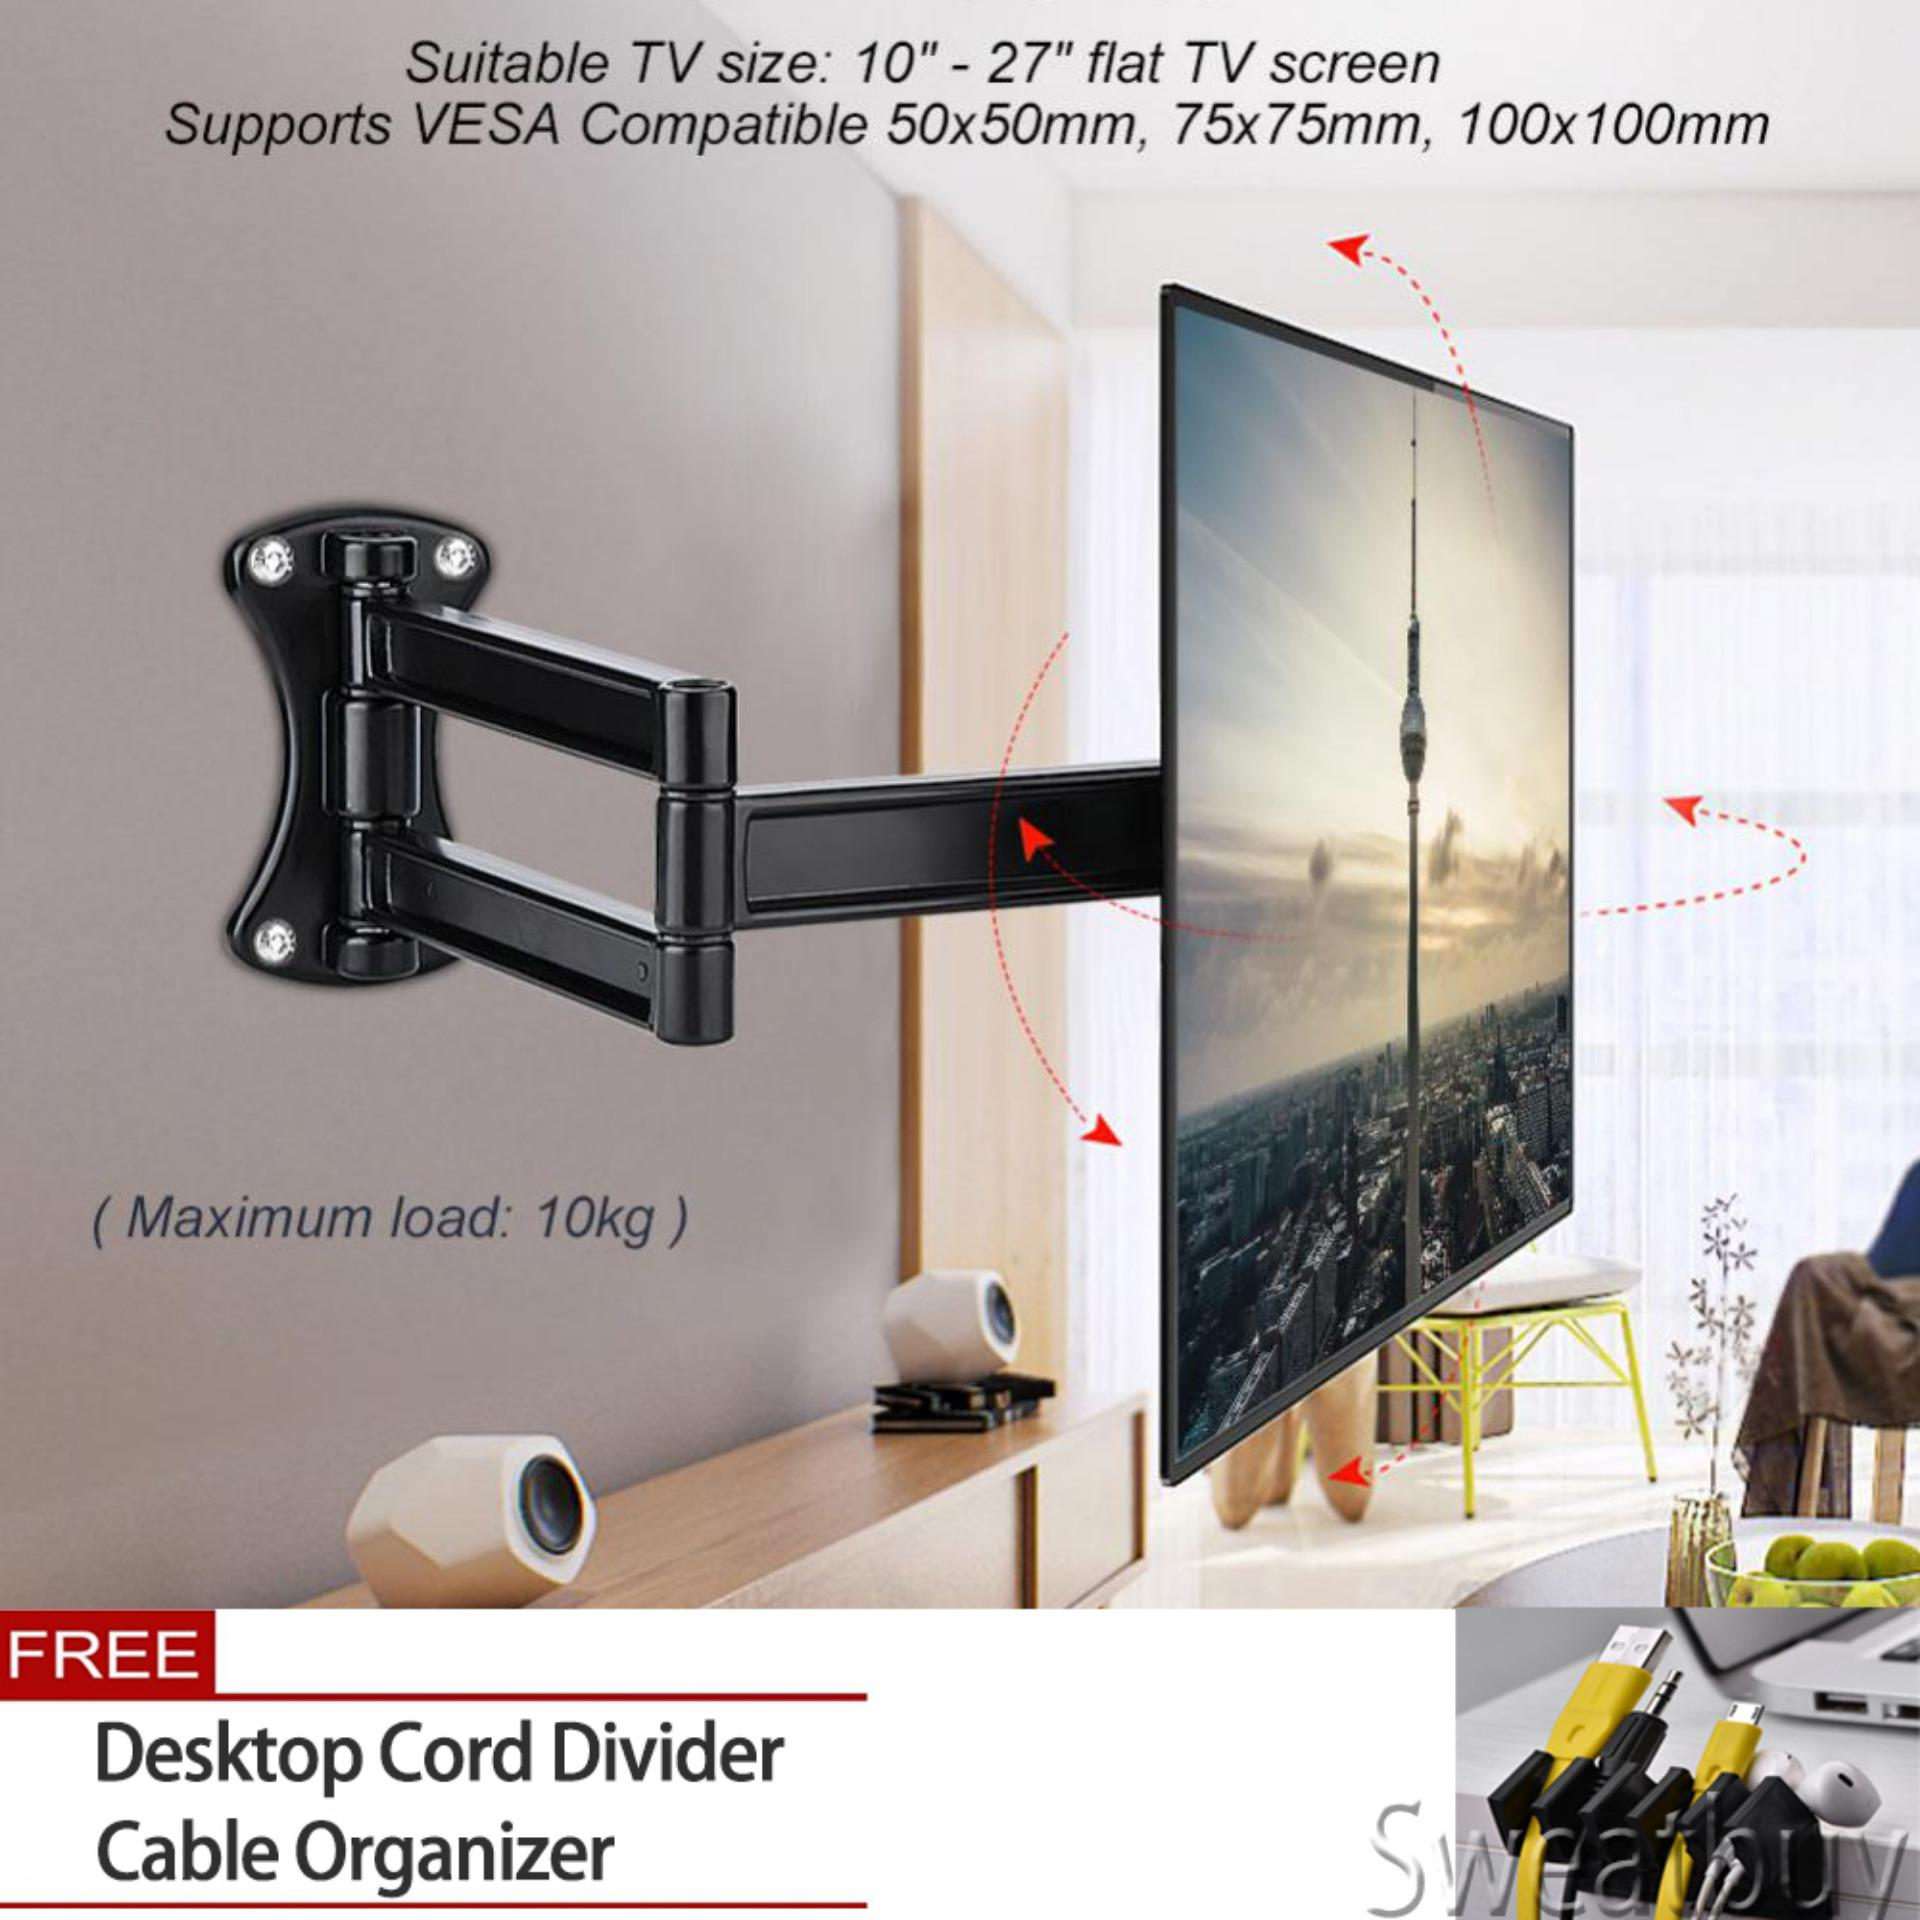 Hình ảnh 【Buy 1 Get 1 Free Gift】Tv Mount Wall Bracket Tilting Swivel Mount Stand Holder for 10-27 Inch Flat TV LED LCD Screen - intl